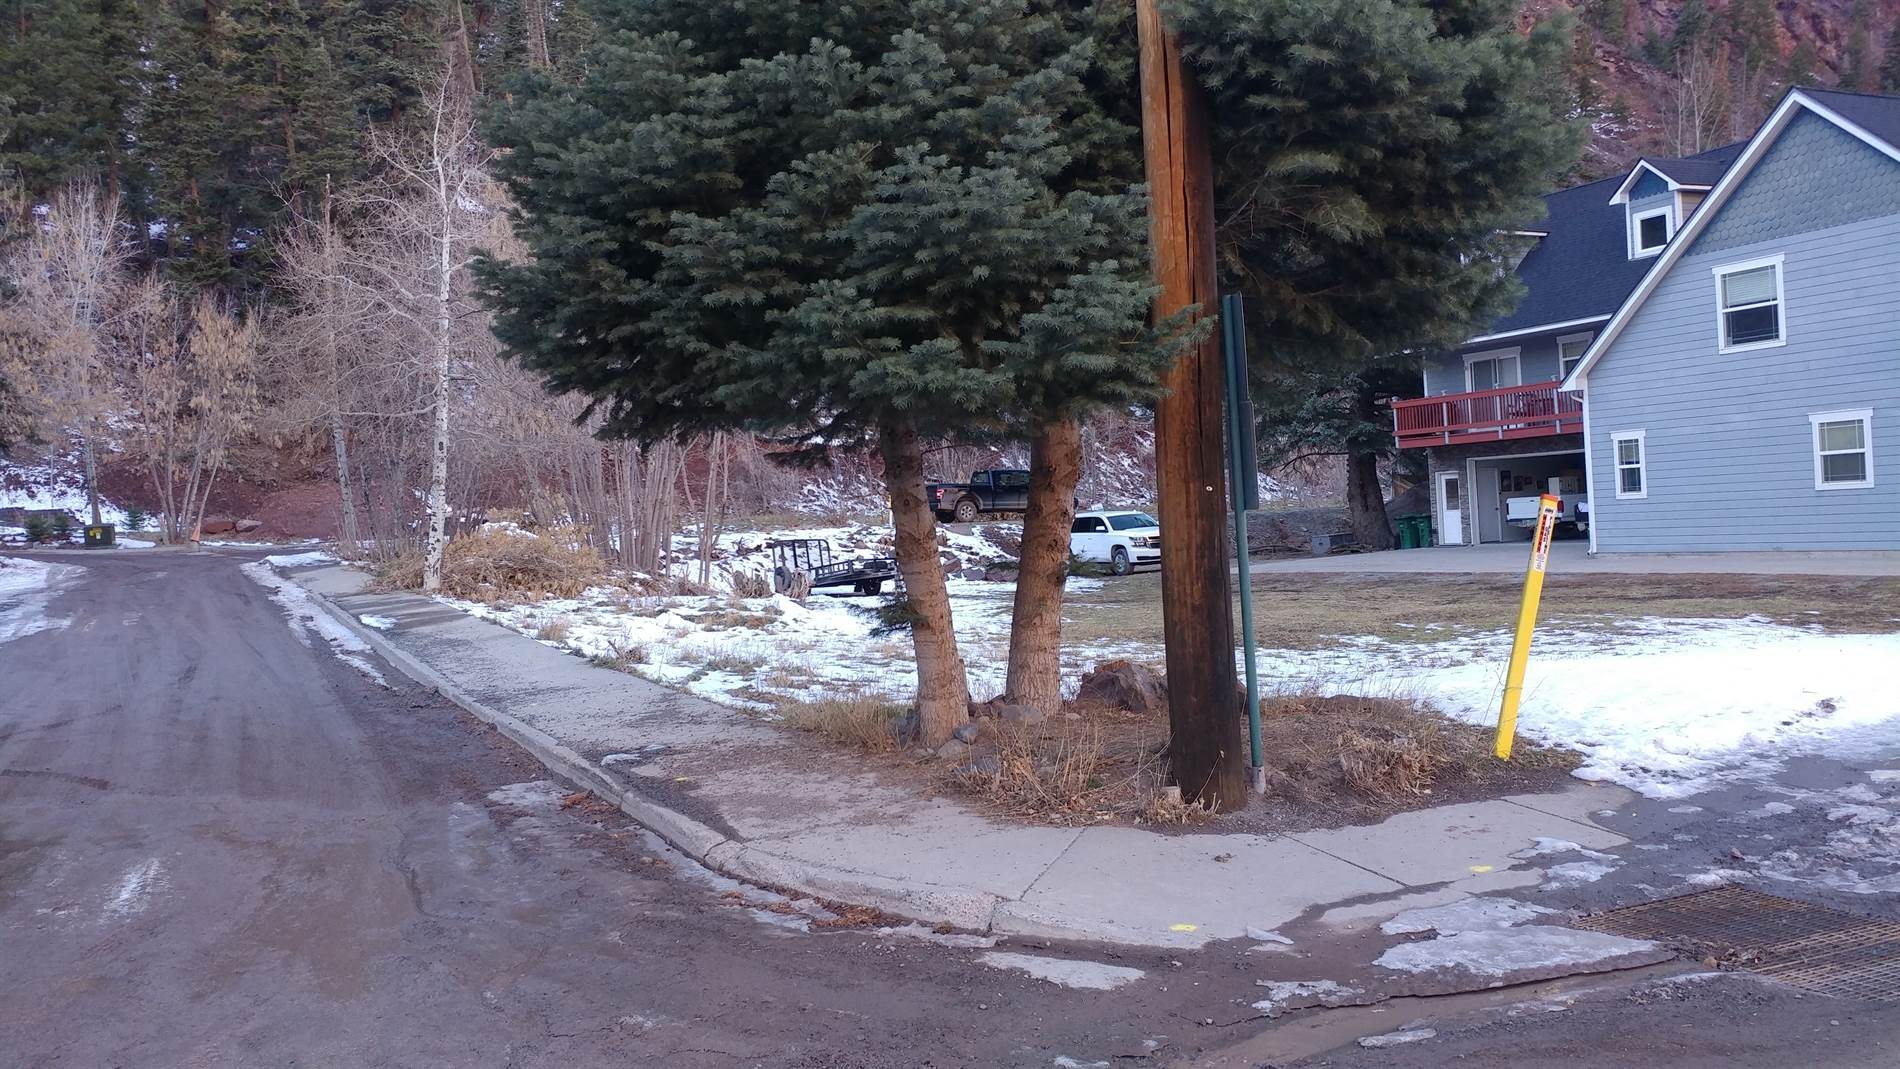 Lot 27 Wanakah Place, Ouray, CO 81427